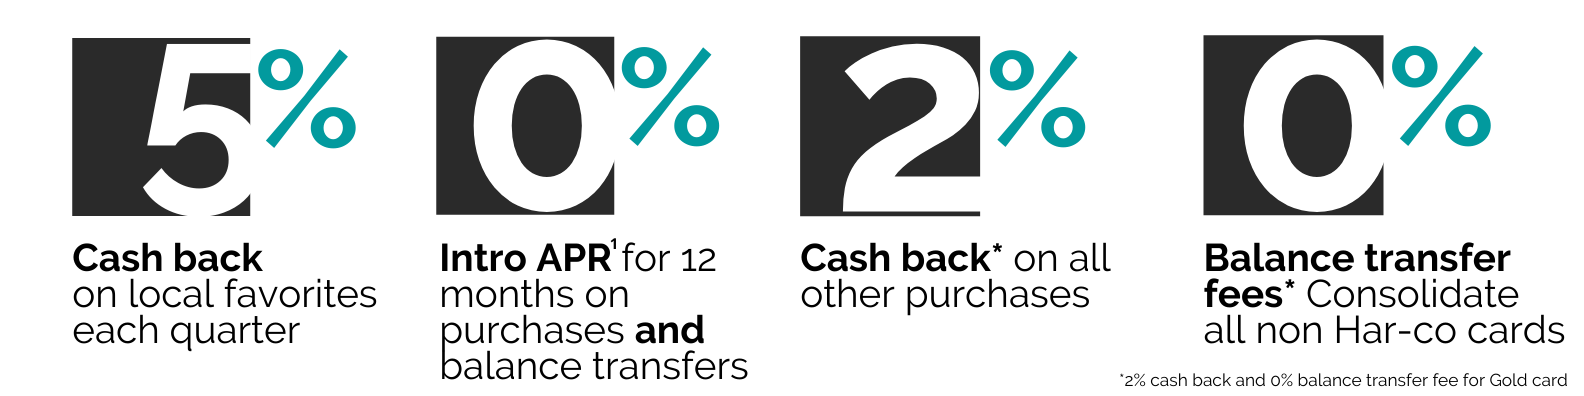 5% cash back on local favorites each quarter, 0% Intro APR for 12 months on purchases and balance transfers, 2% cash back on all purchases, 0% balance transfer fees consolidate all non Har-co cards